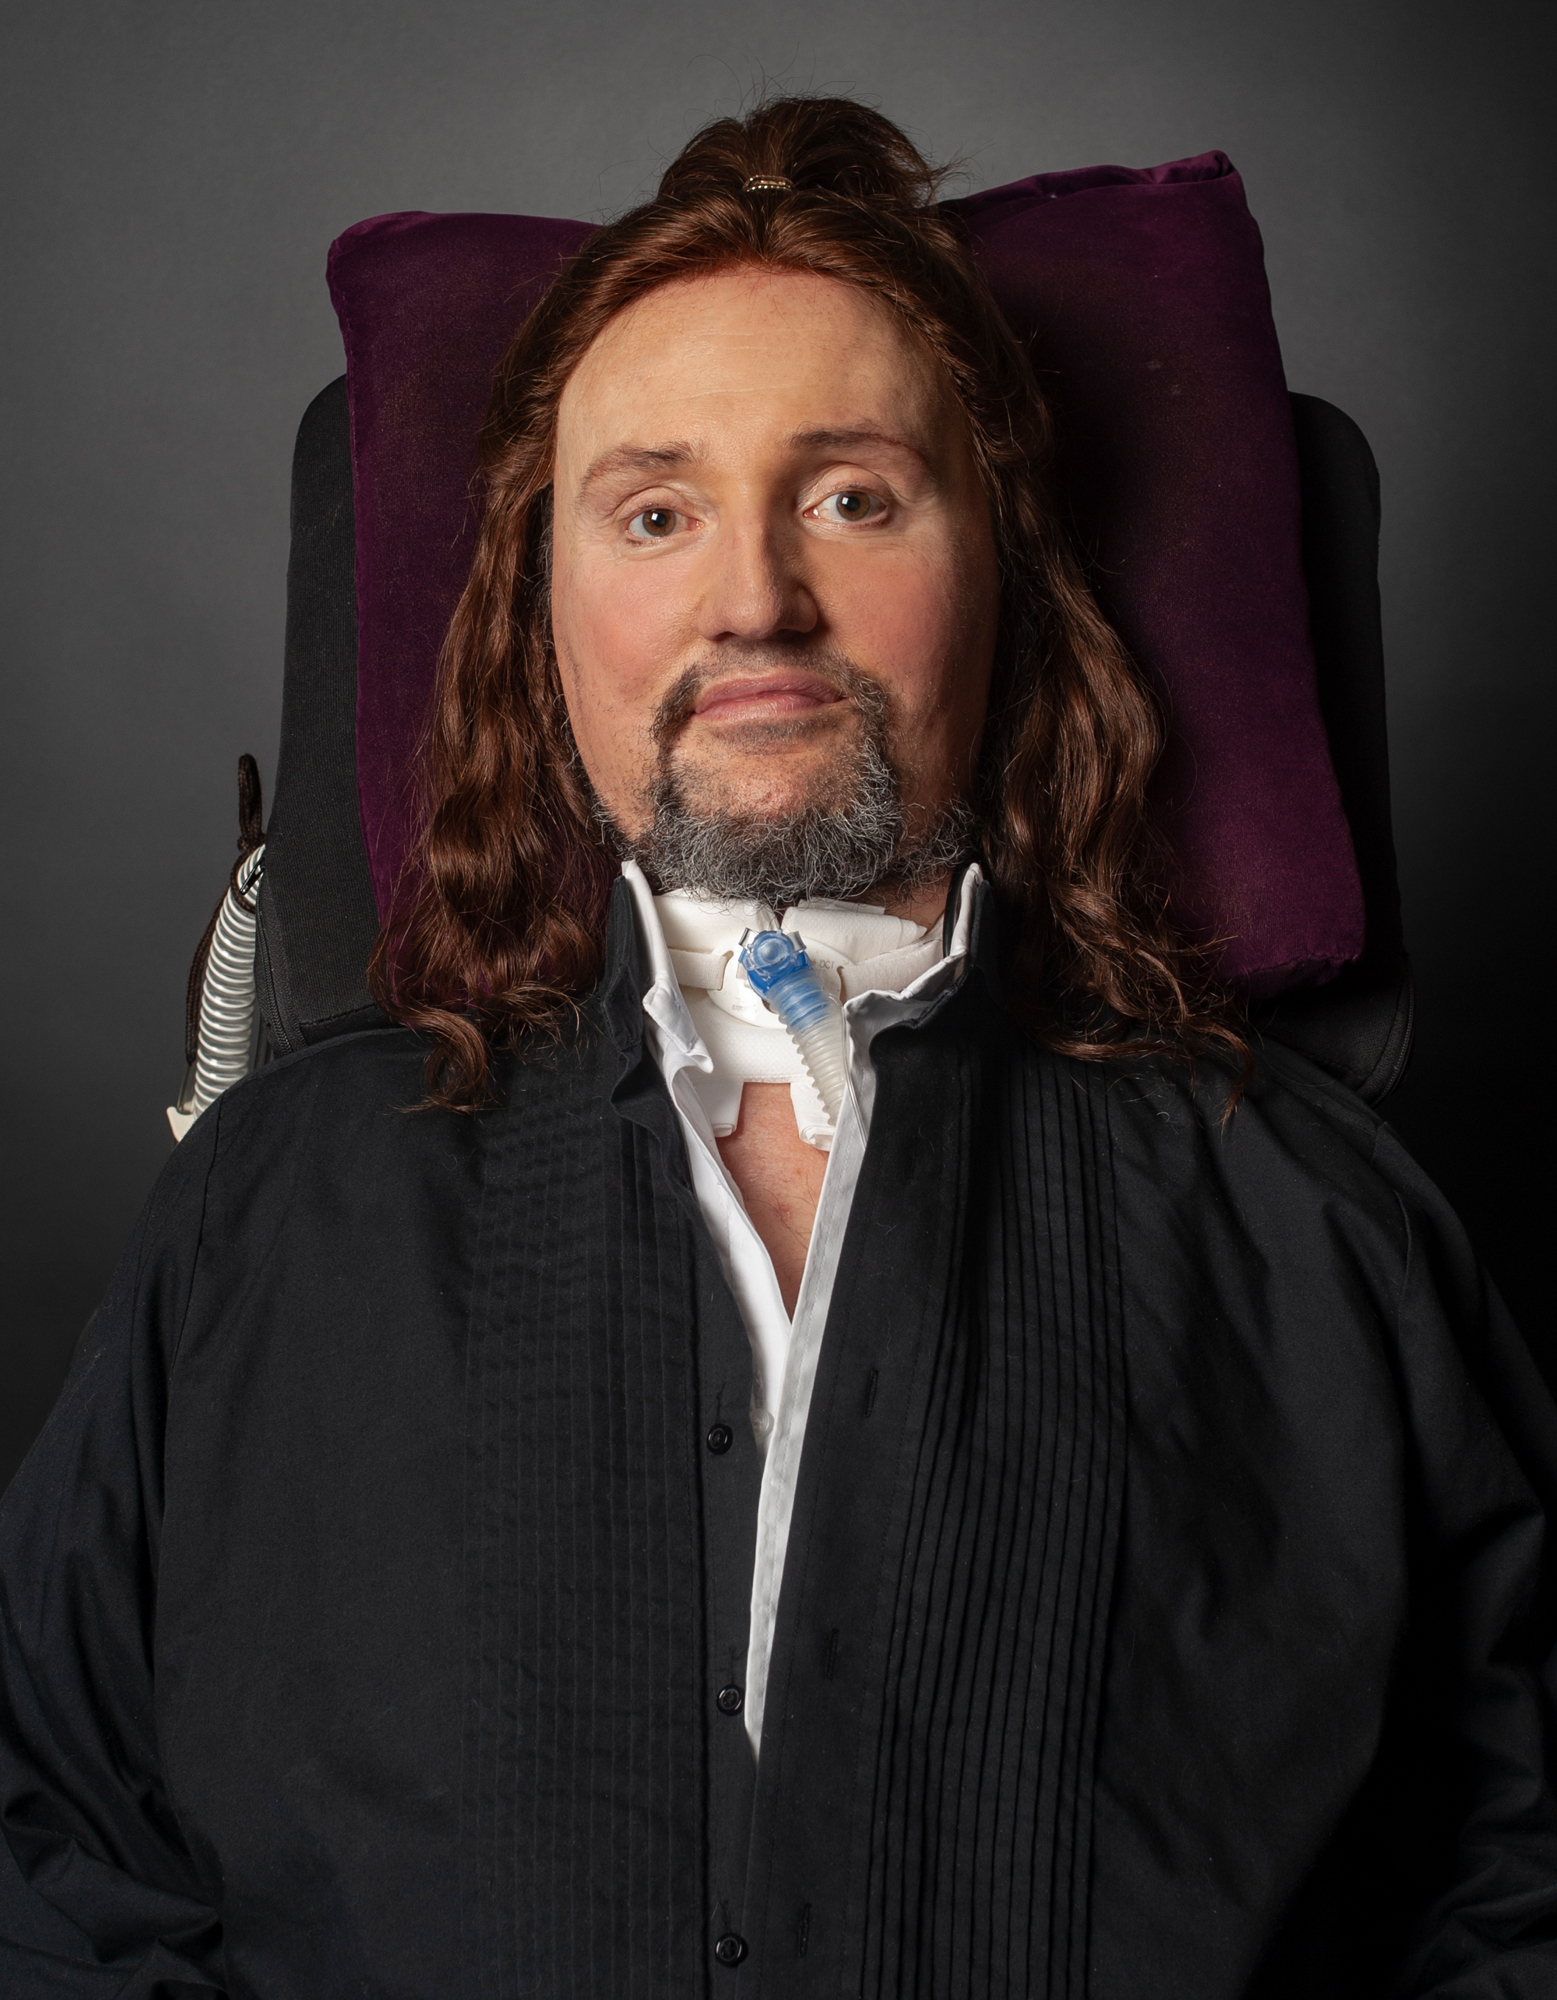 Jason Becker To Release 'Triumphant Hearts' on December 7th